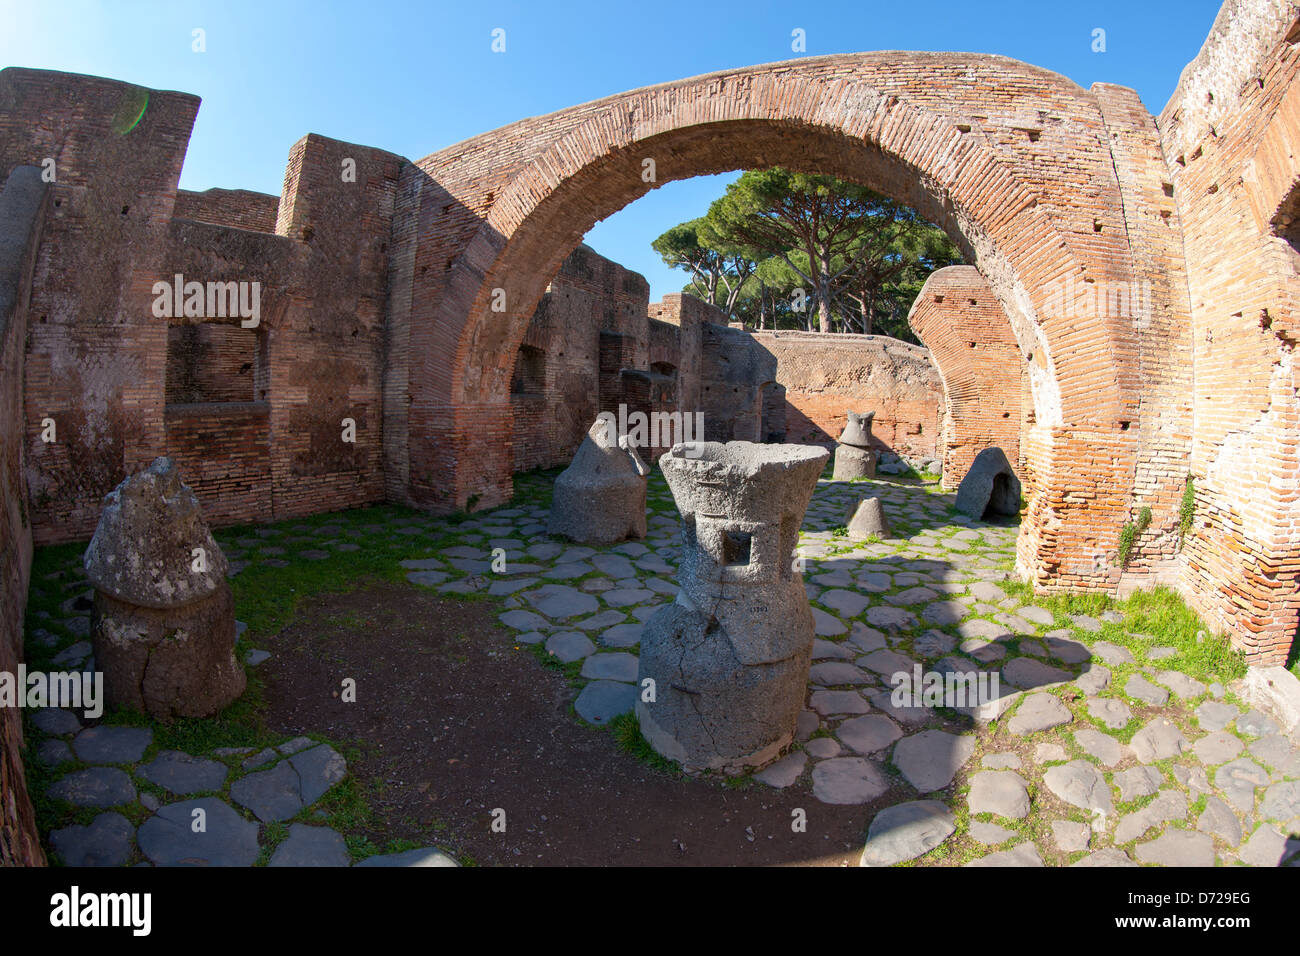 A Roman Bakery in Ostia Antica, with carved pumice millstones for grinding corn - Stock Image